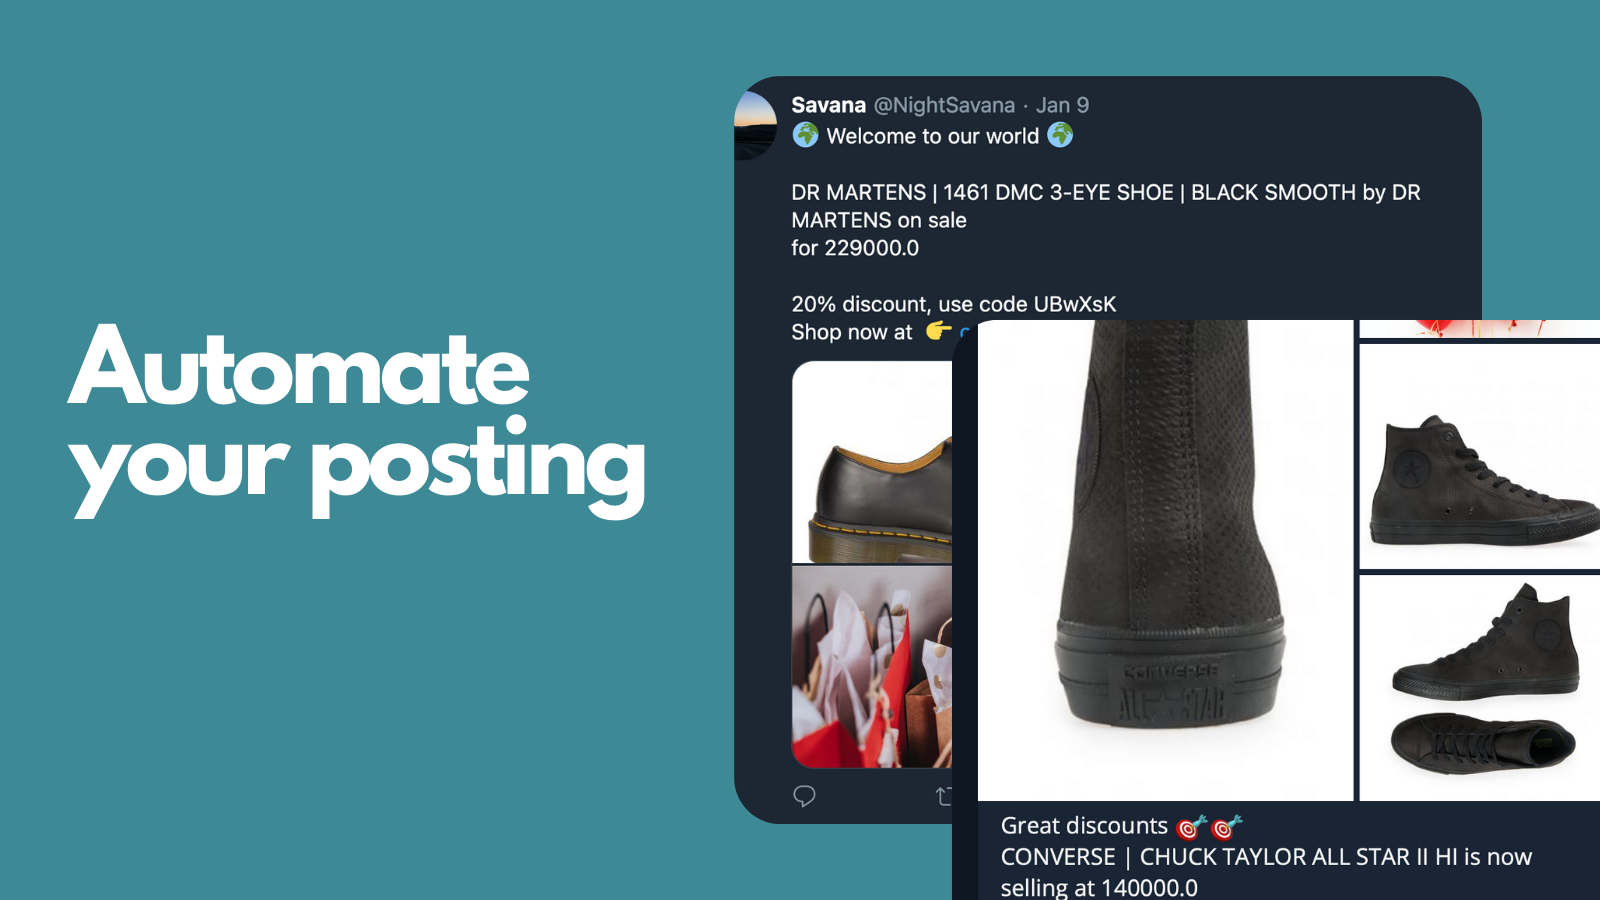 Automate your posting